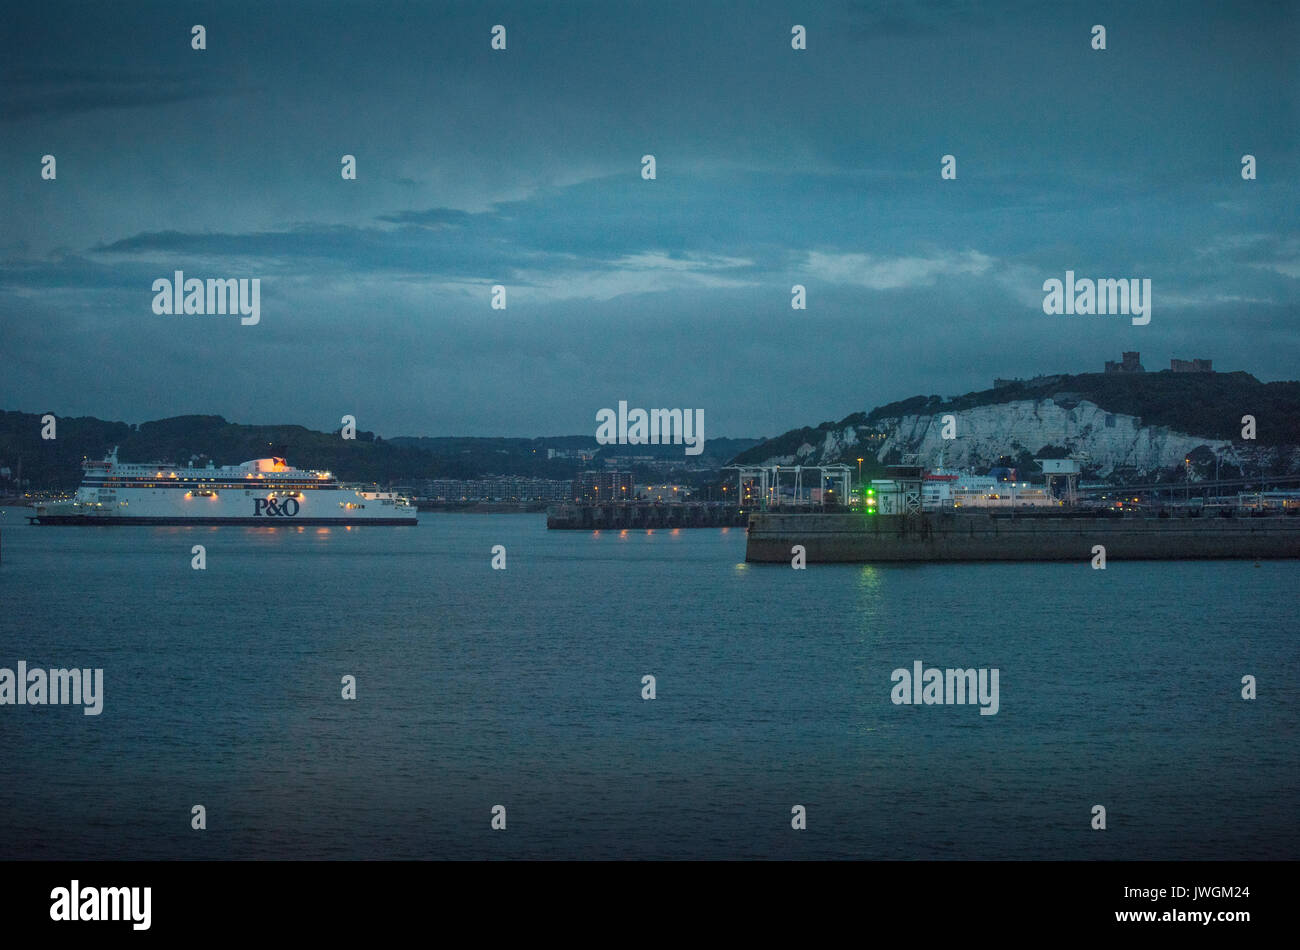 Dover Kent England,UK. August 2017 P&O Cross Channel Ferry entering Dover Port from Calais, France. - Stock Image